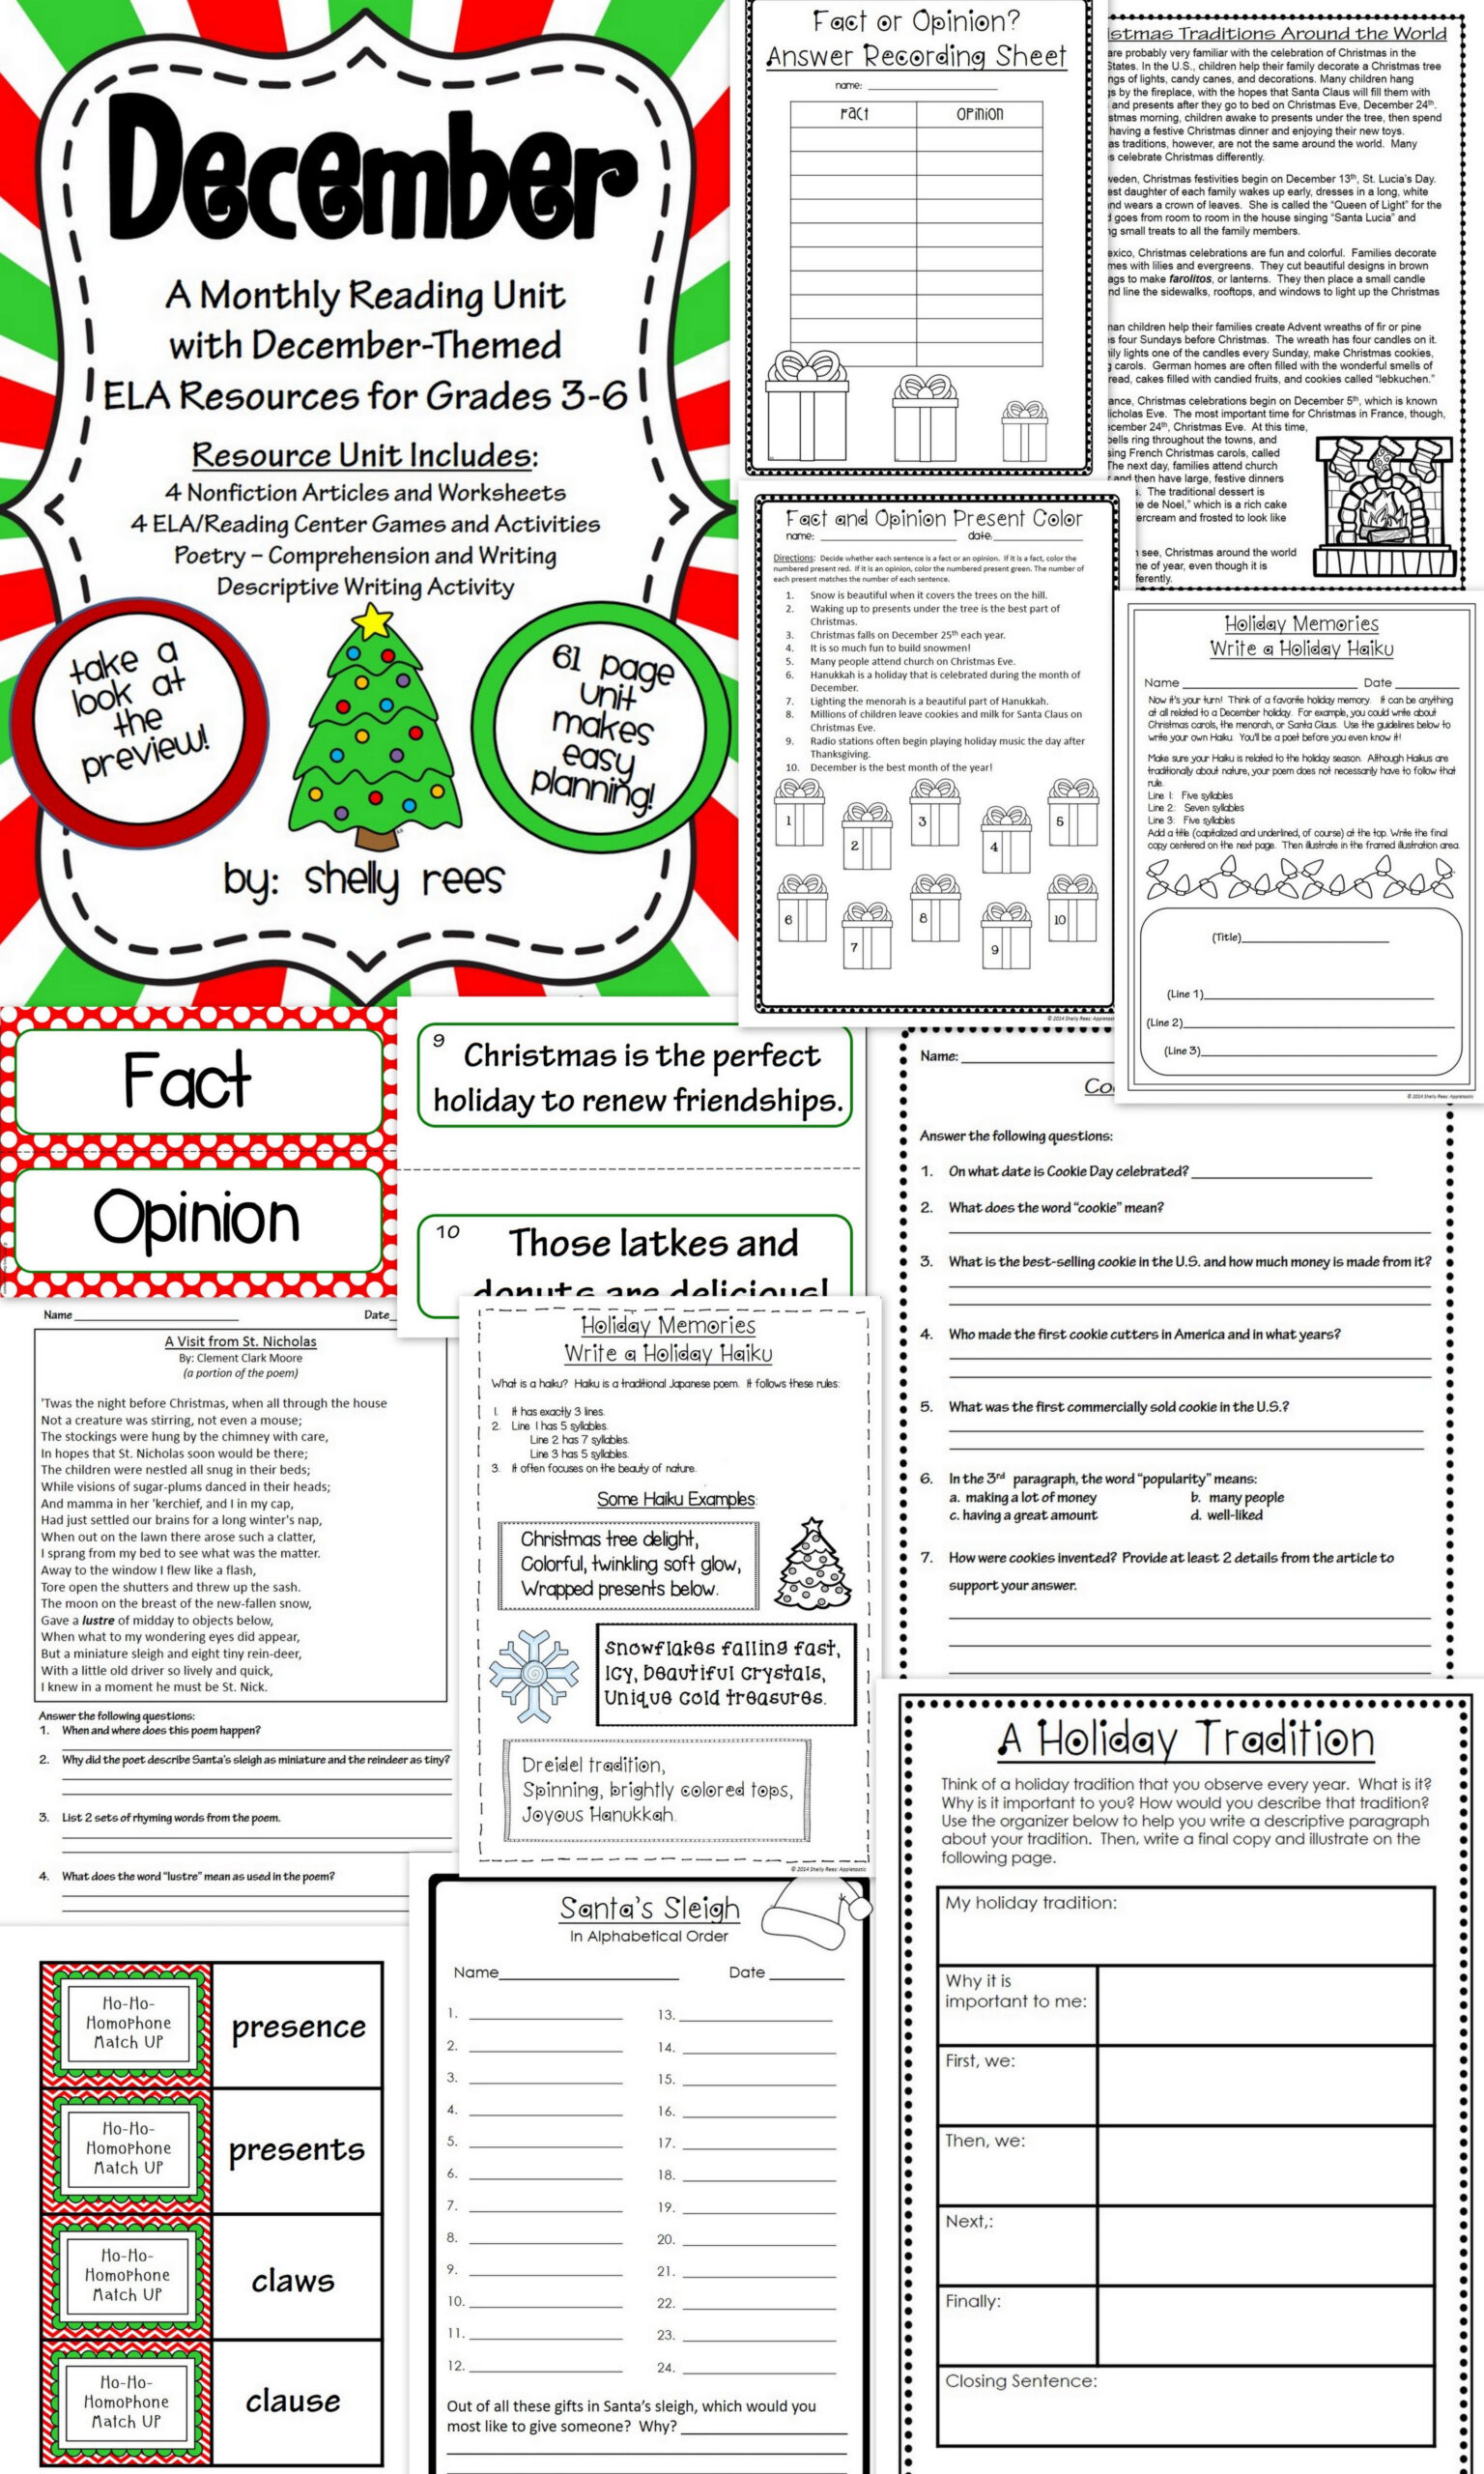 December Reading/ela Resource Packet - Grades 4, 5, And 6